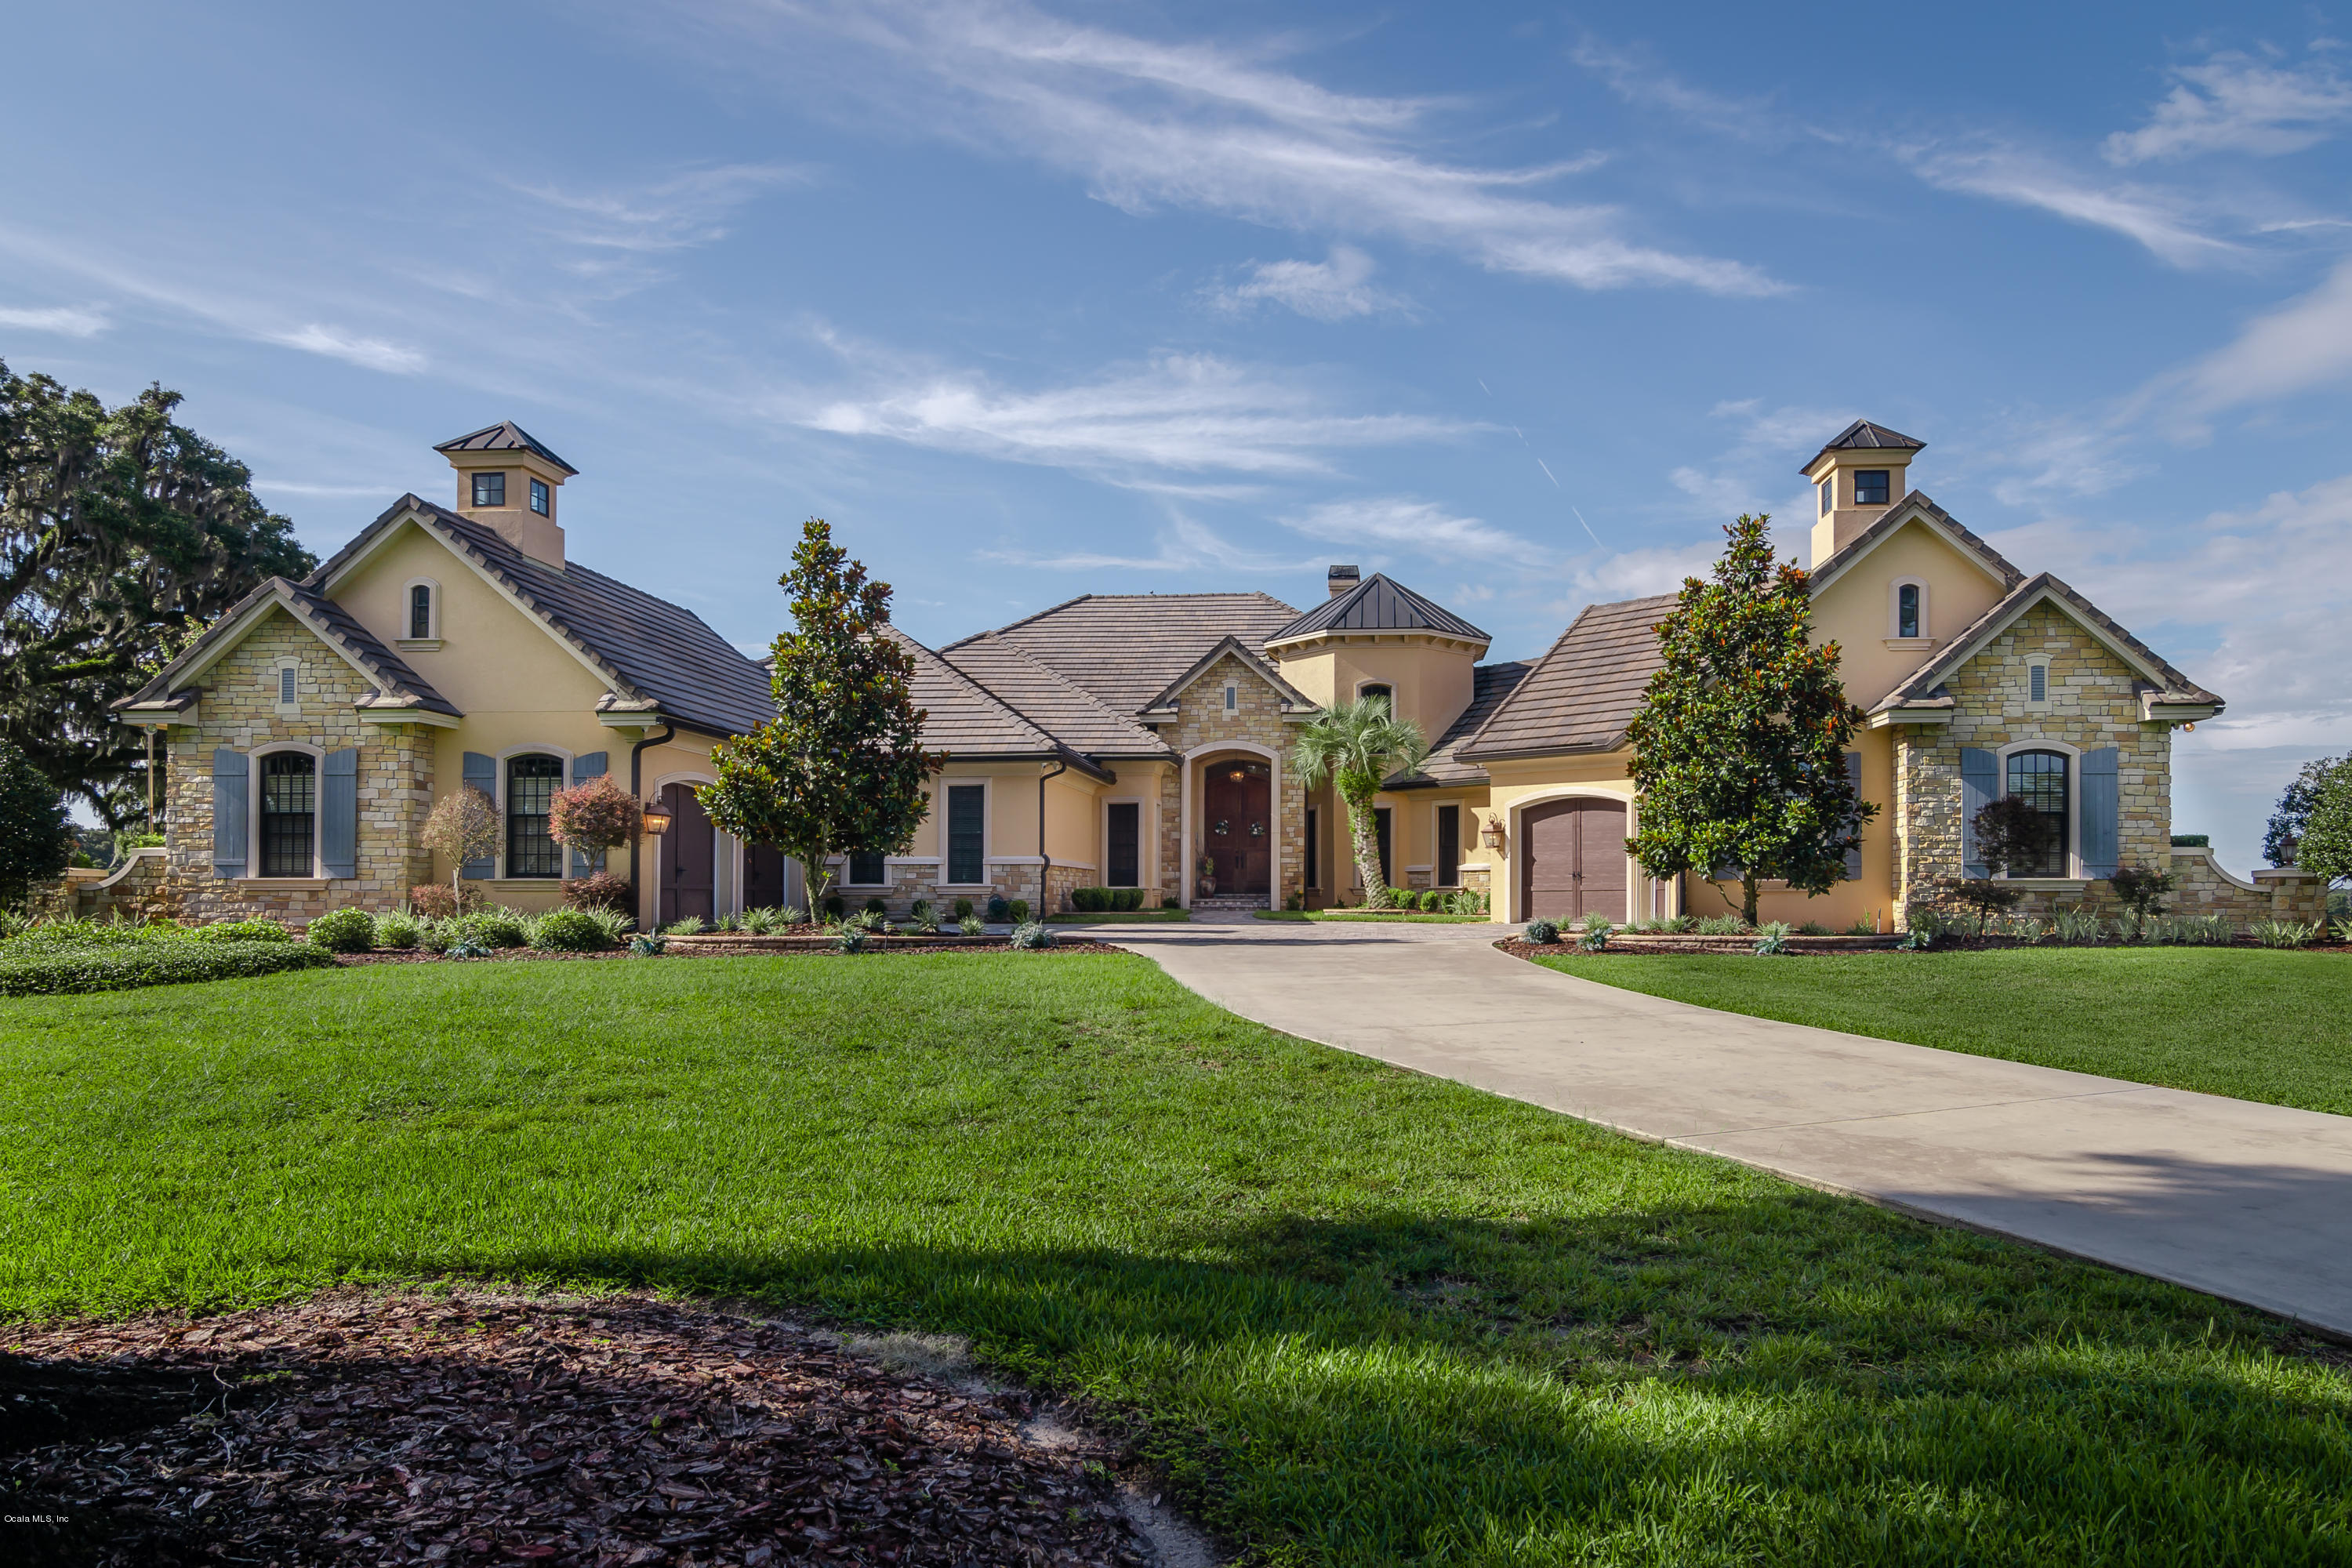 5796 Living main home, 4 bedrooms 4.5 baths, pool, theater,fitness and more